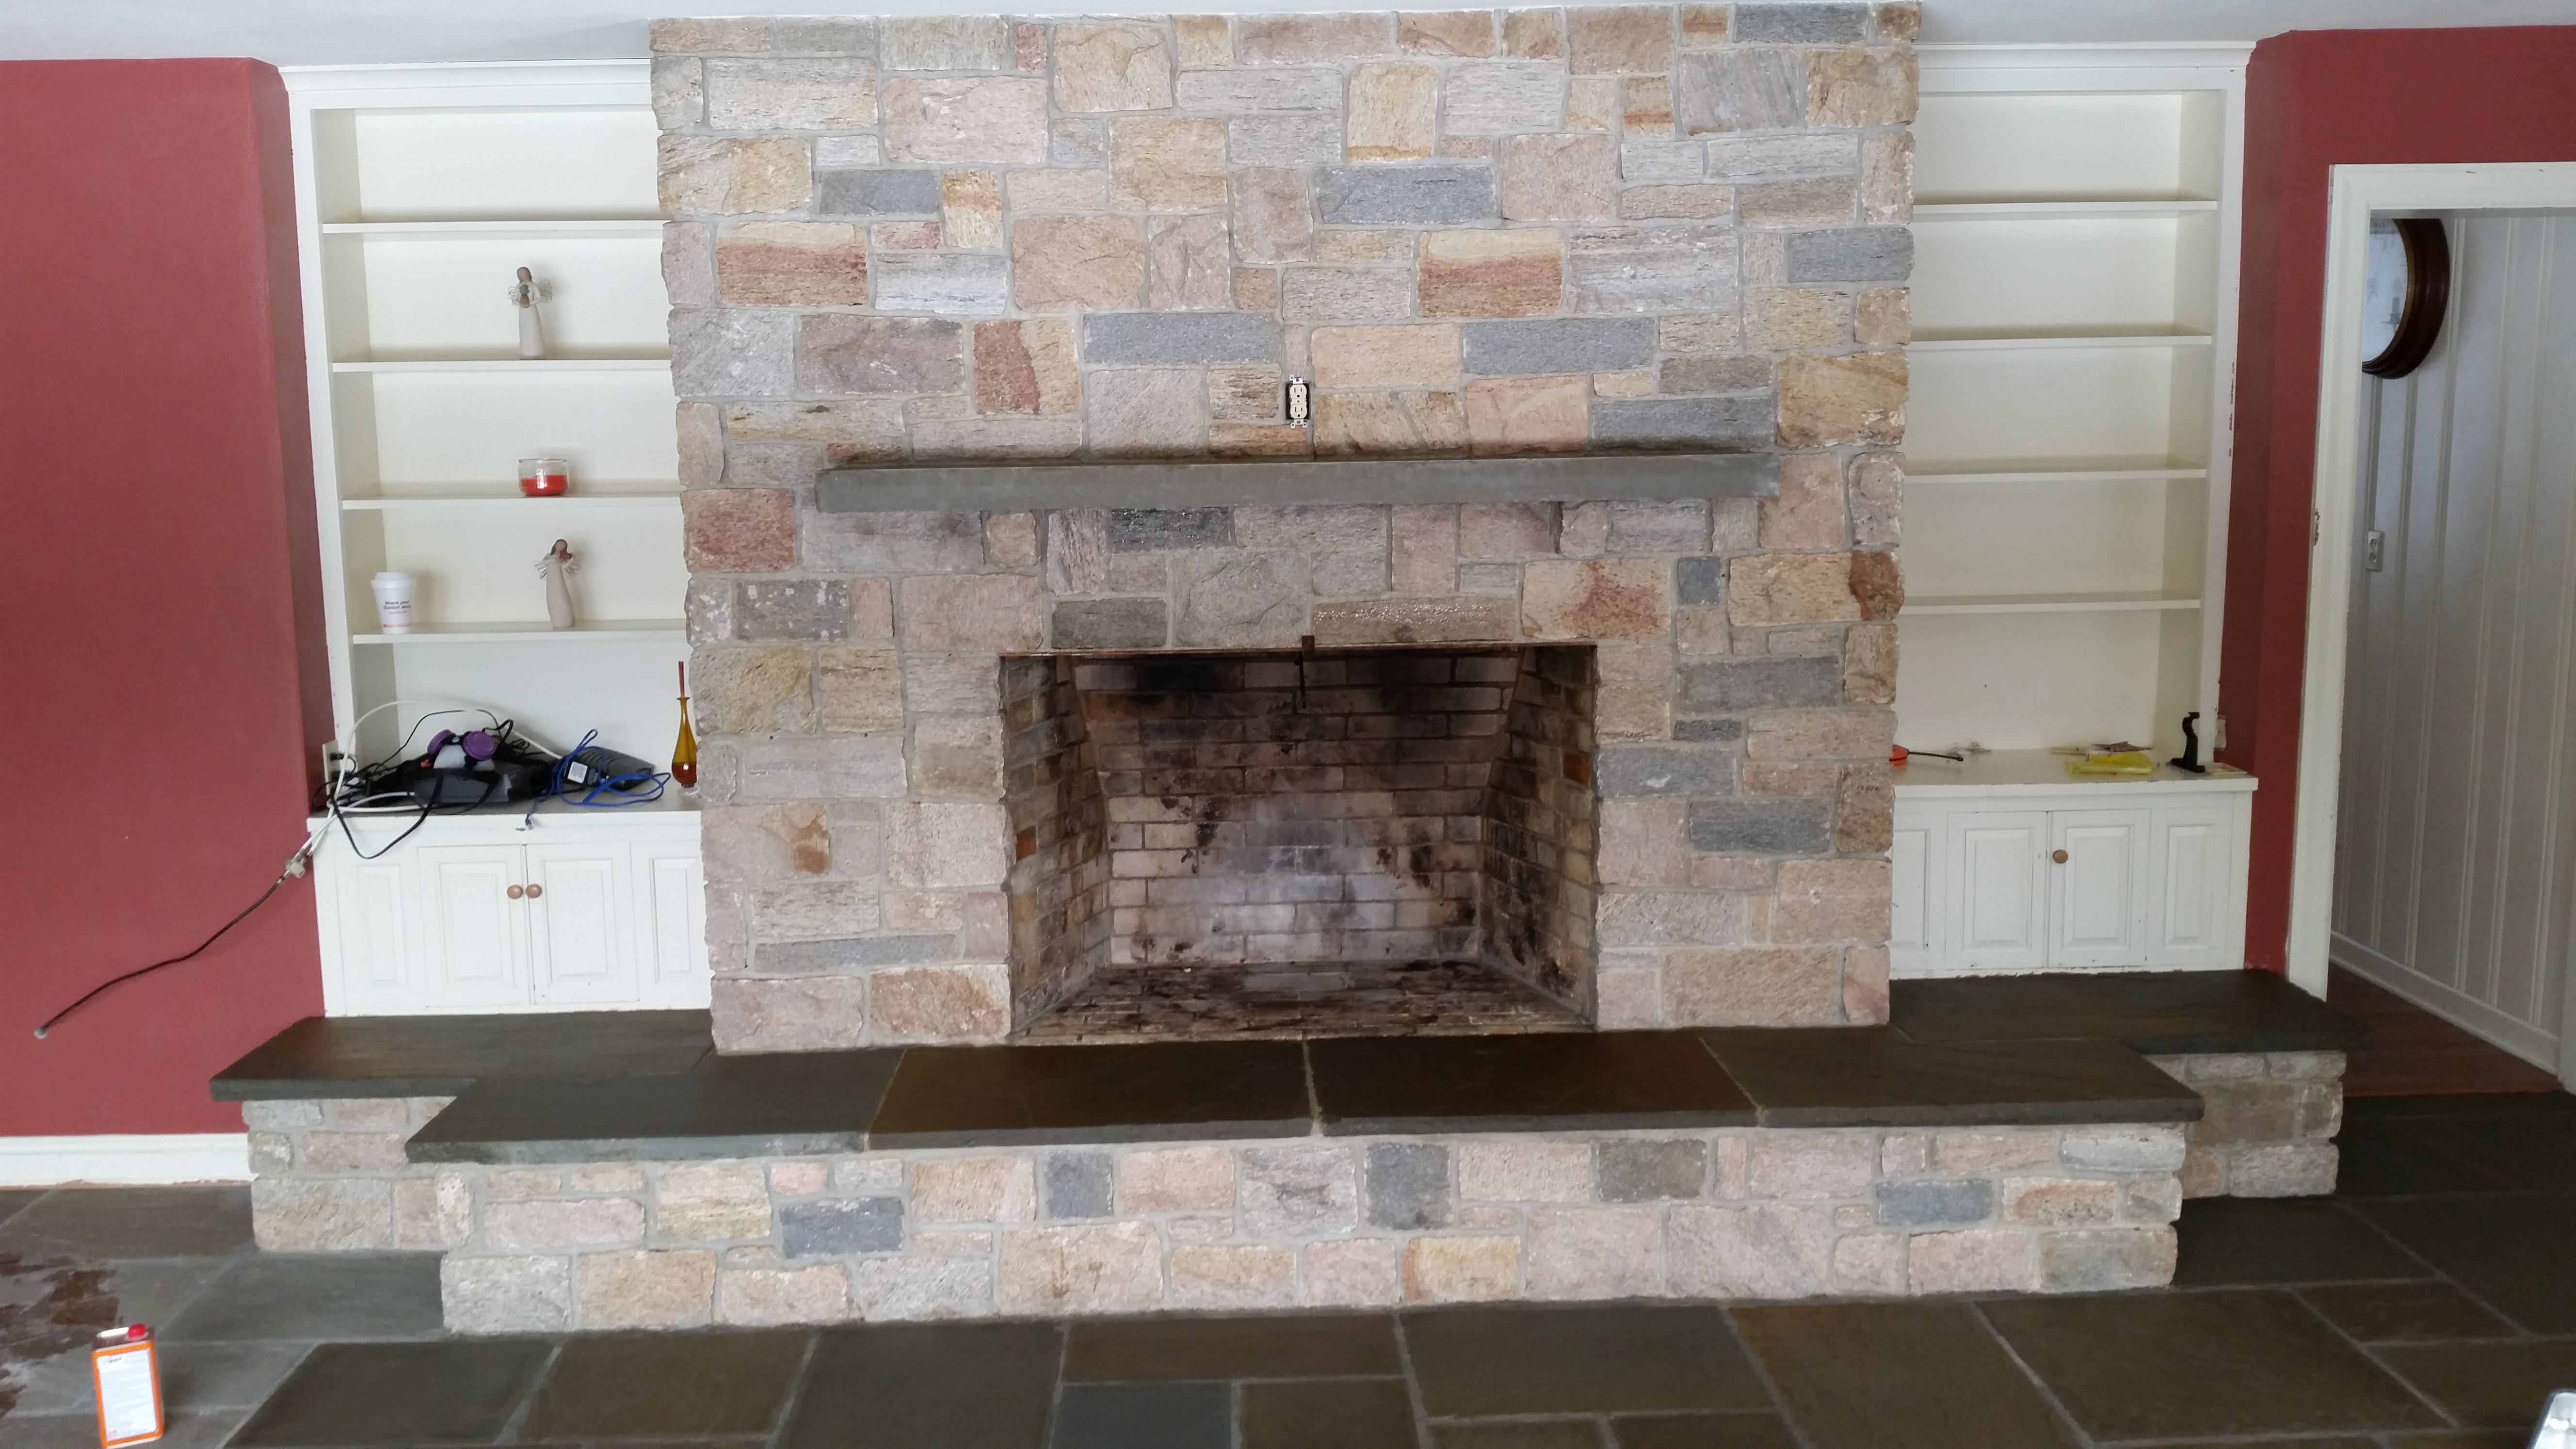 Ziegler S Was Hired To Re All The Bluestone Slate Floors In This Redding Ct Home Fireplace Added And Responded Well Restoration